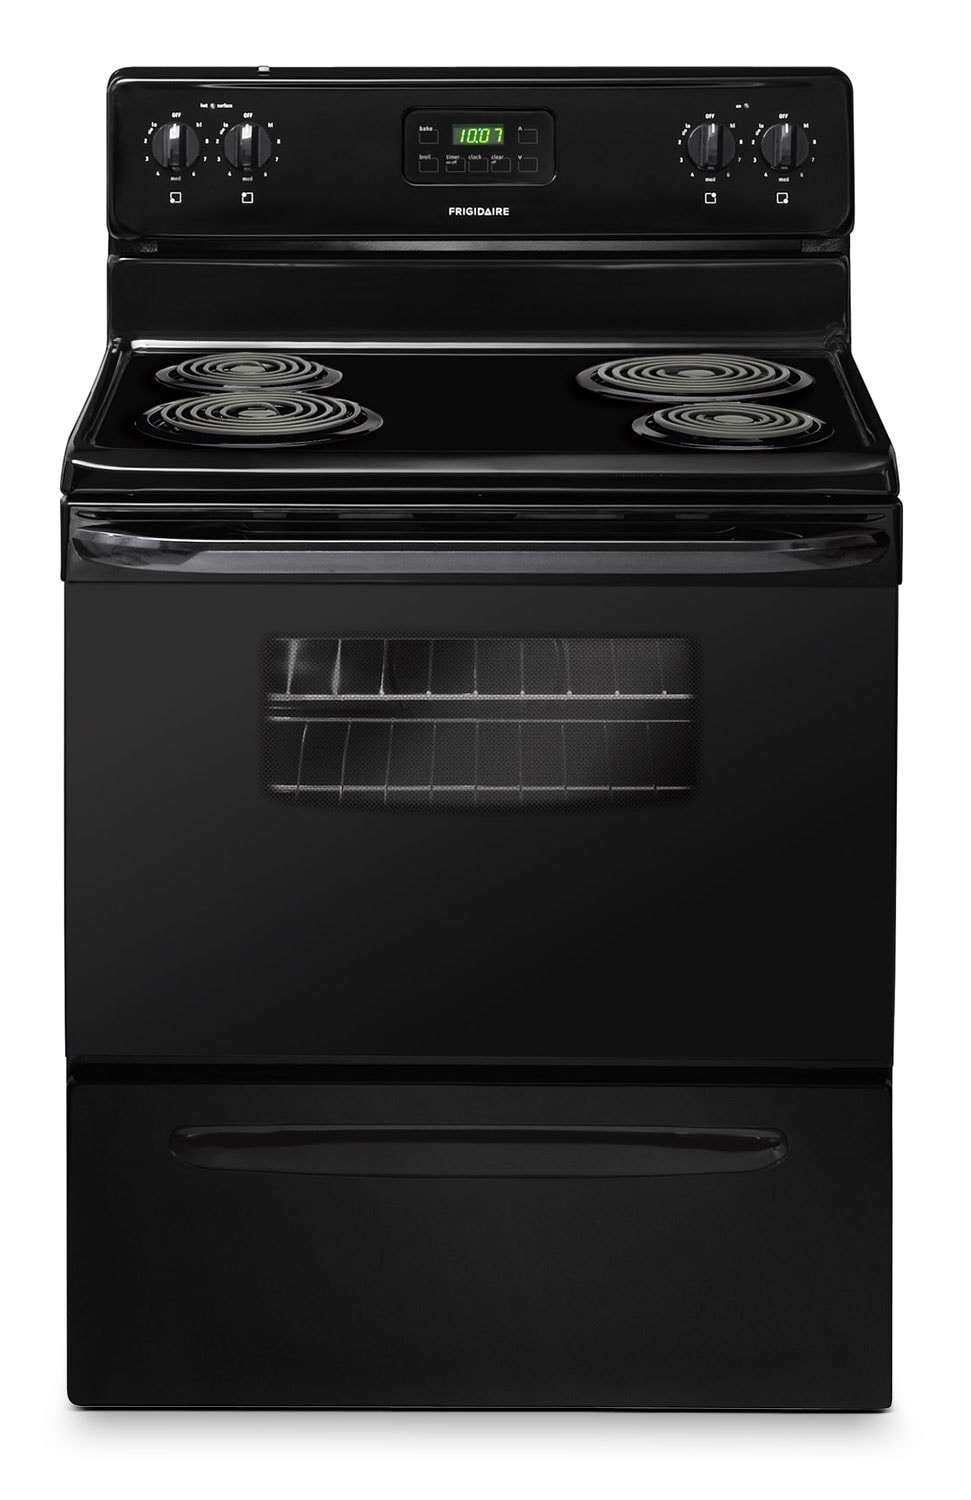 Cooking Products - Frigidaire Black Freestanding Electric Range (4.8 Cu. Ft.) - CFEF3012PB